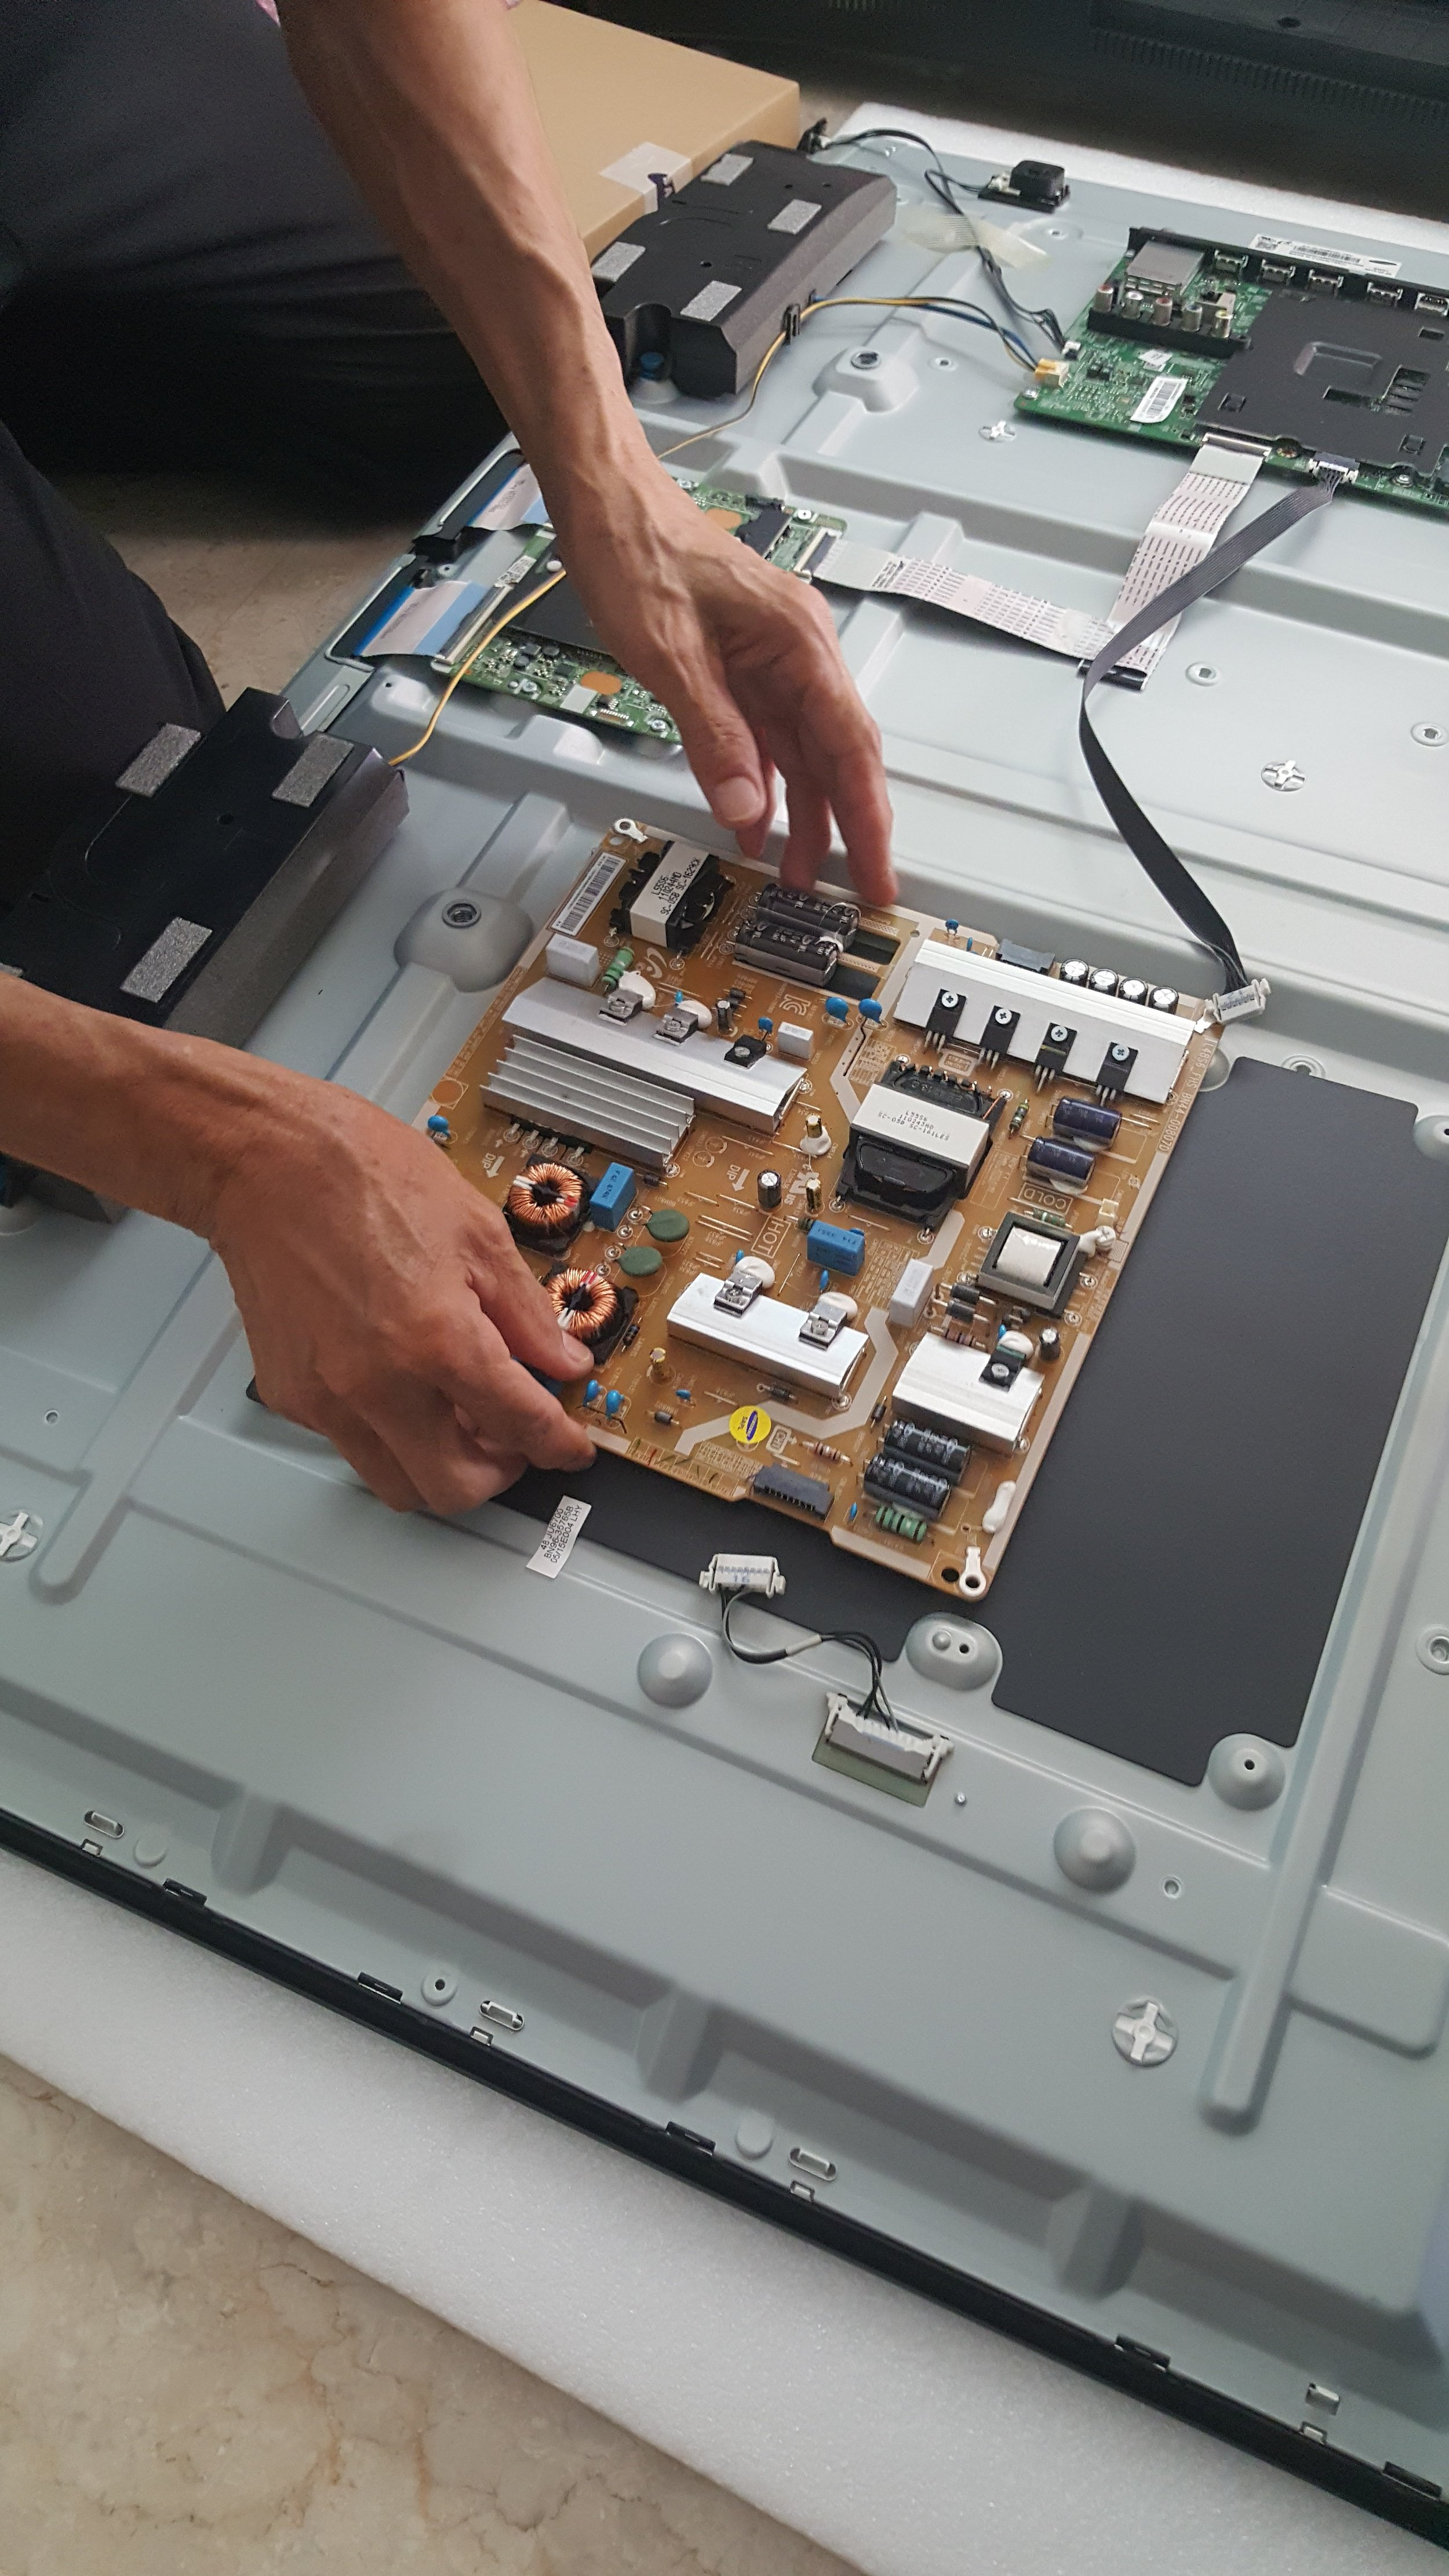 - An identical motherboard which the technician had brought along was swiftly replaced.